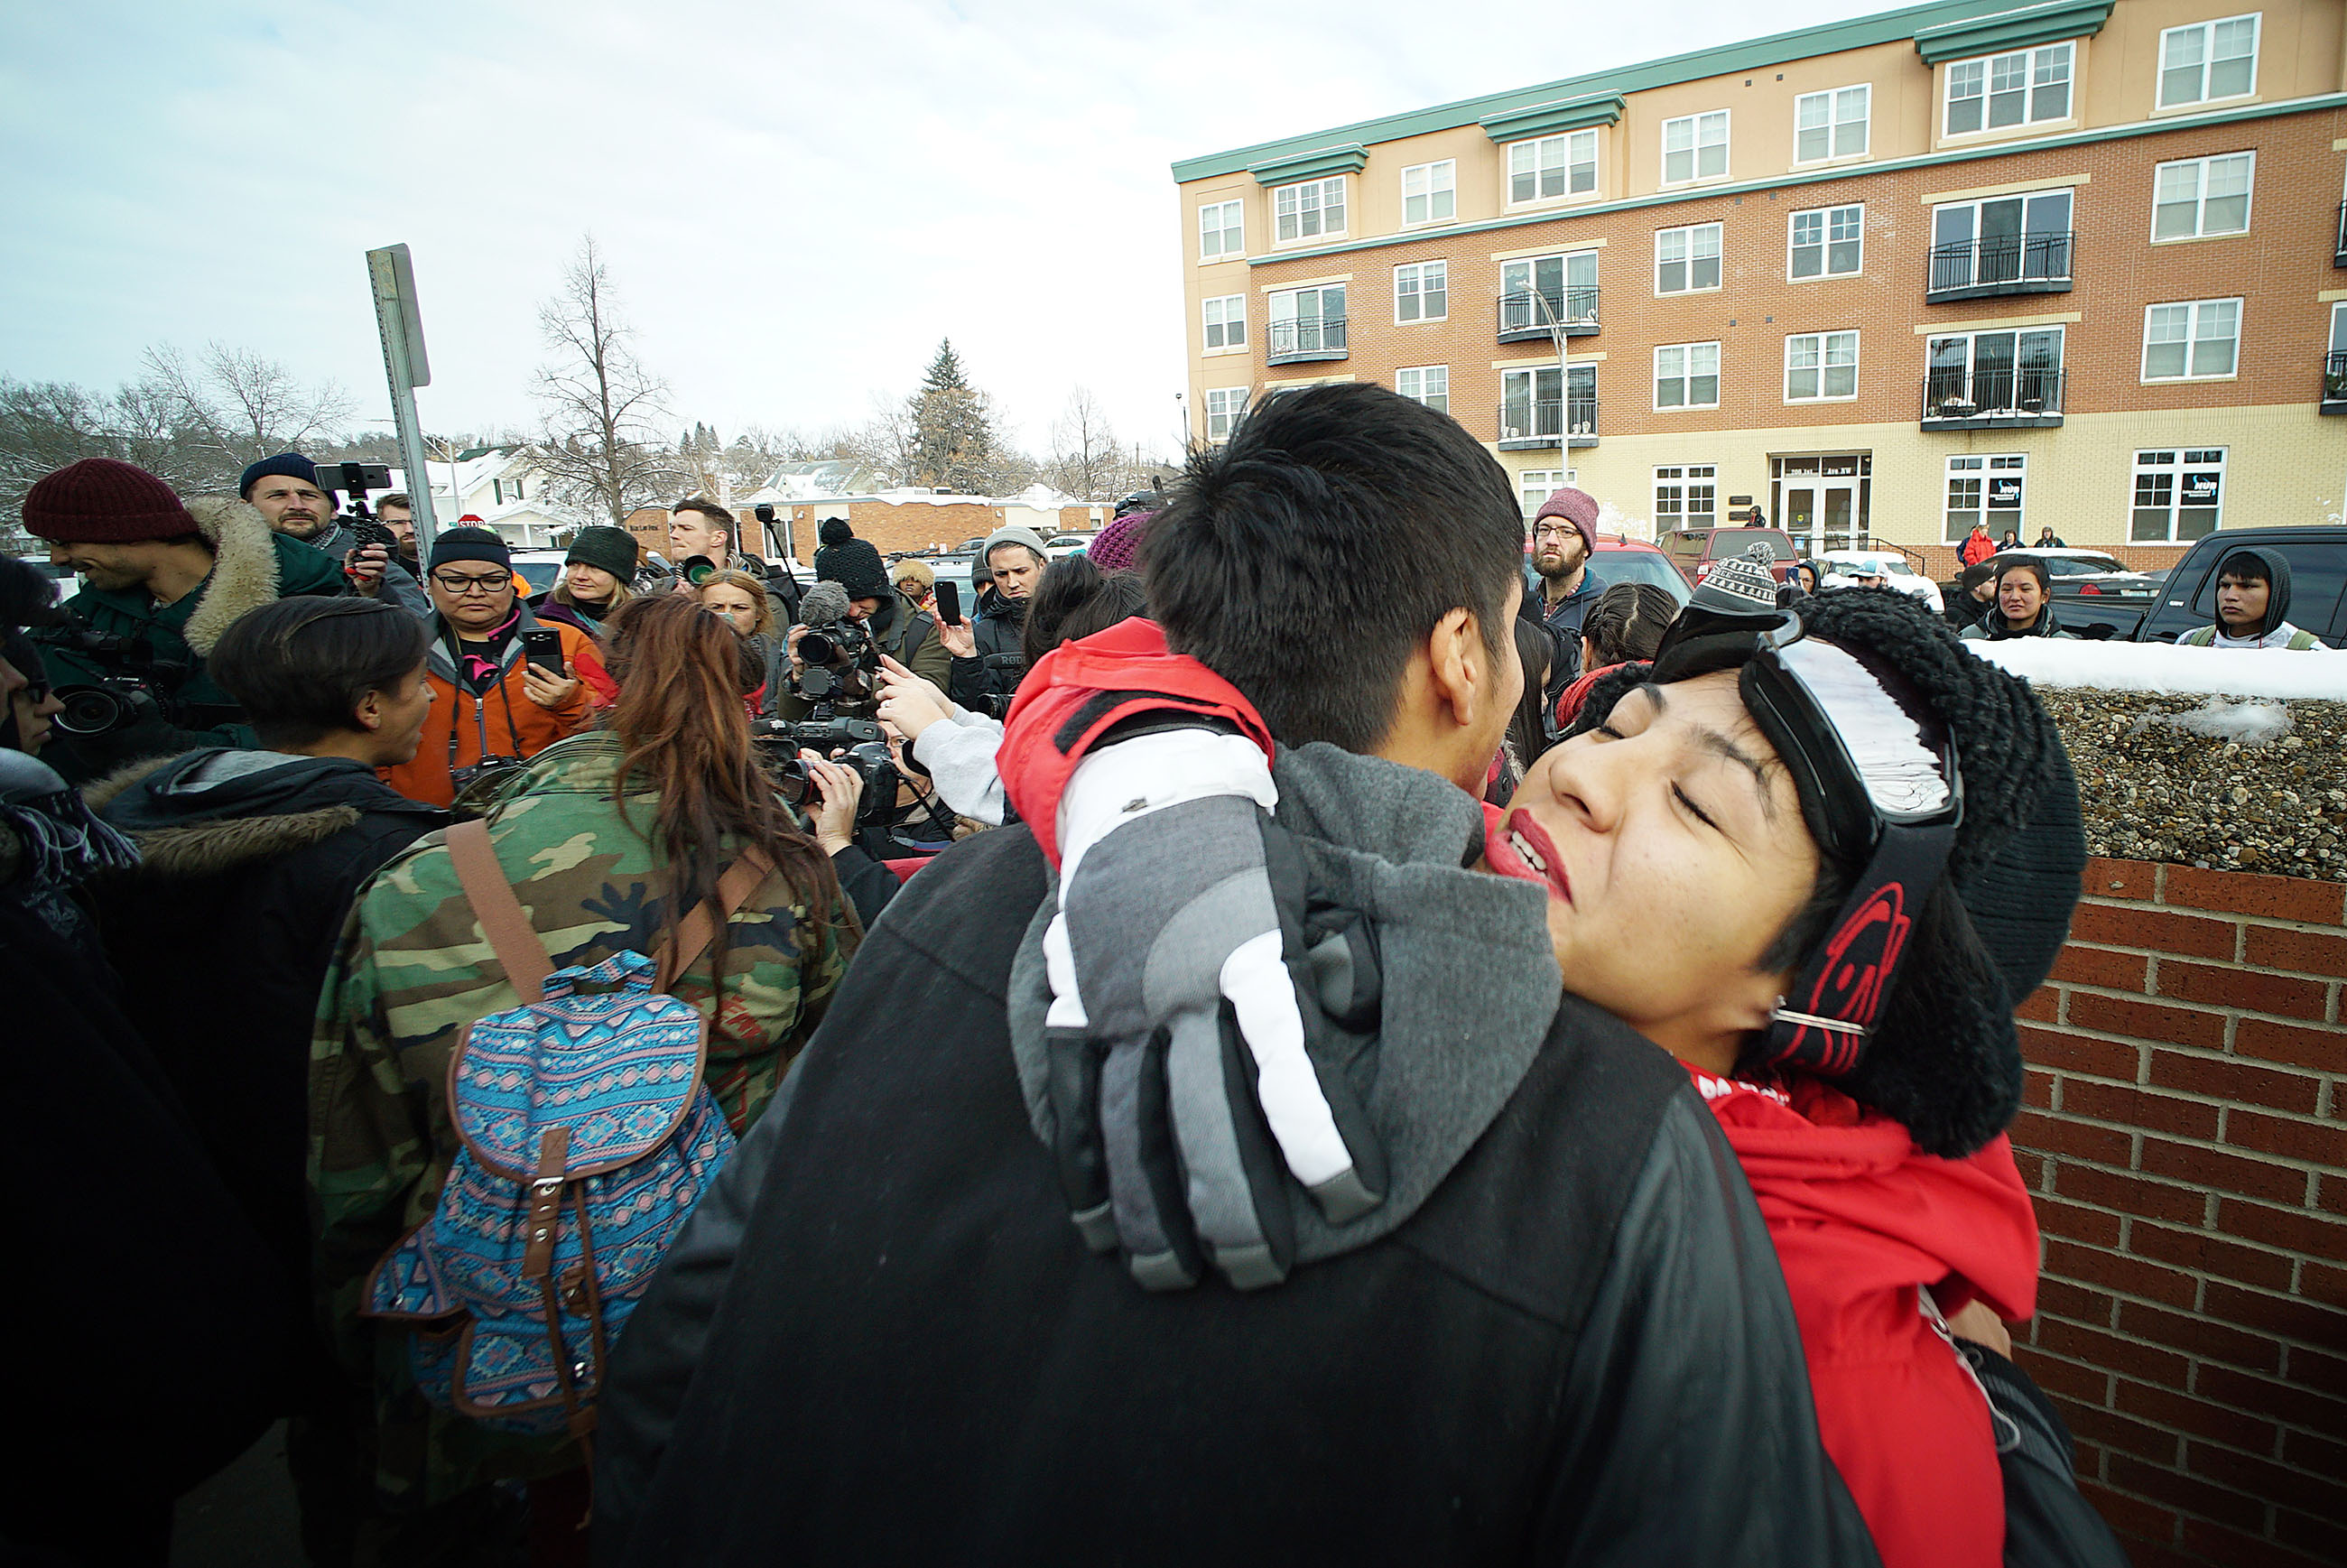 <p>After the delivery in Mandan, Mia Stevens, right, embraced another protester.</p>